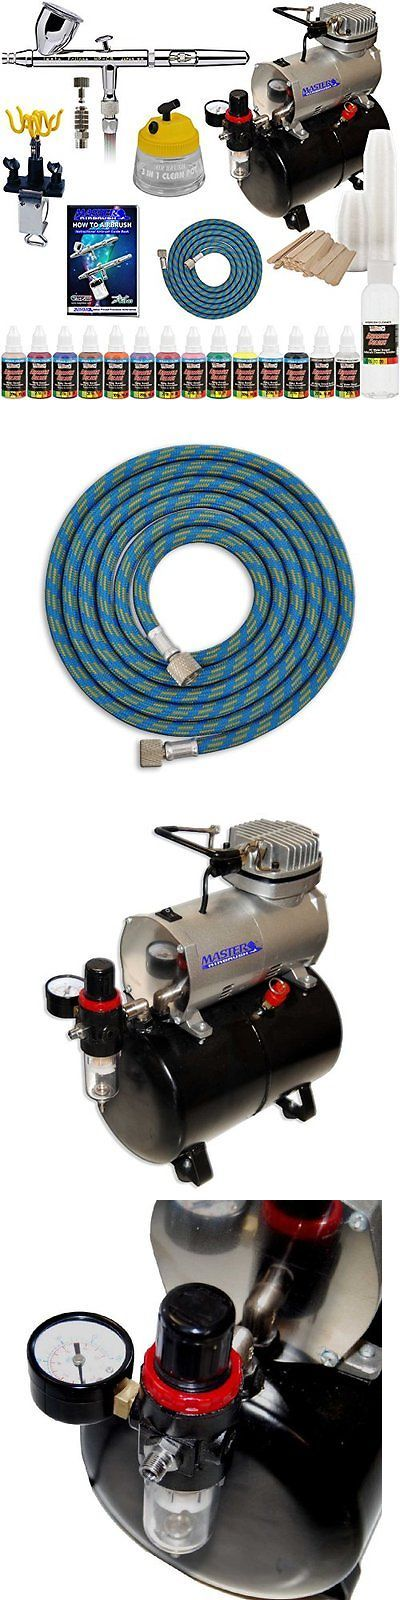 Airbrush Paints 183092: Iwata Hp-Cs Eclipse Airbrush Kit With Airbrush Depot Tank Compressor And 6 Foot -> BUY IT NOW ONLY: $350.77 on eBay!